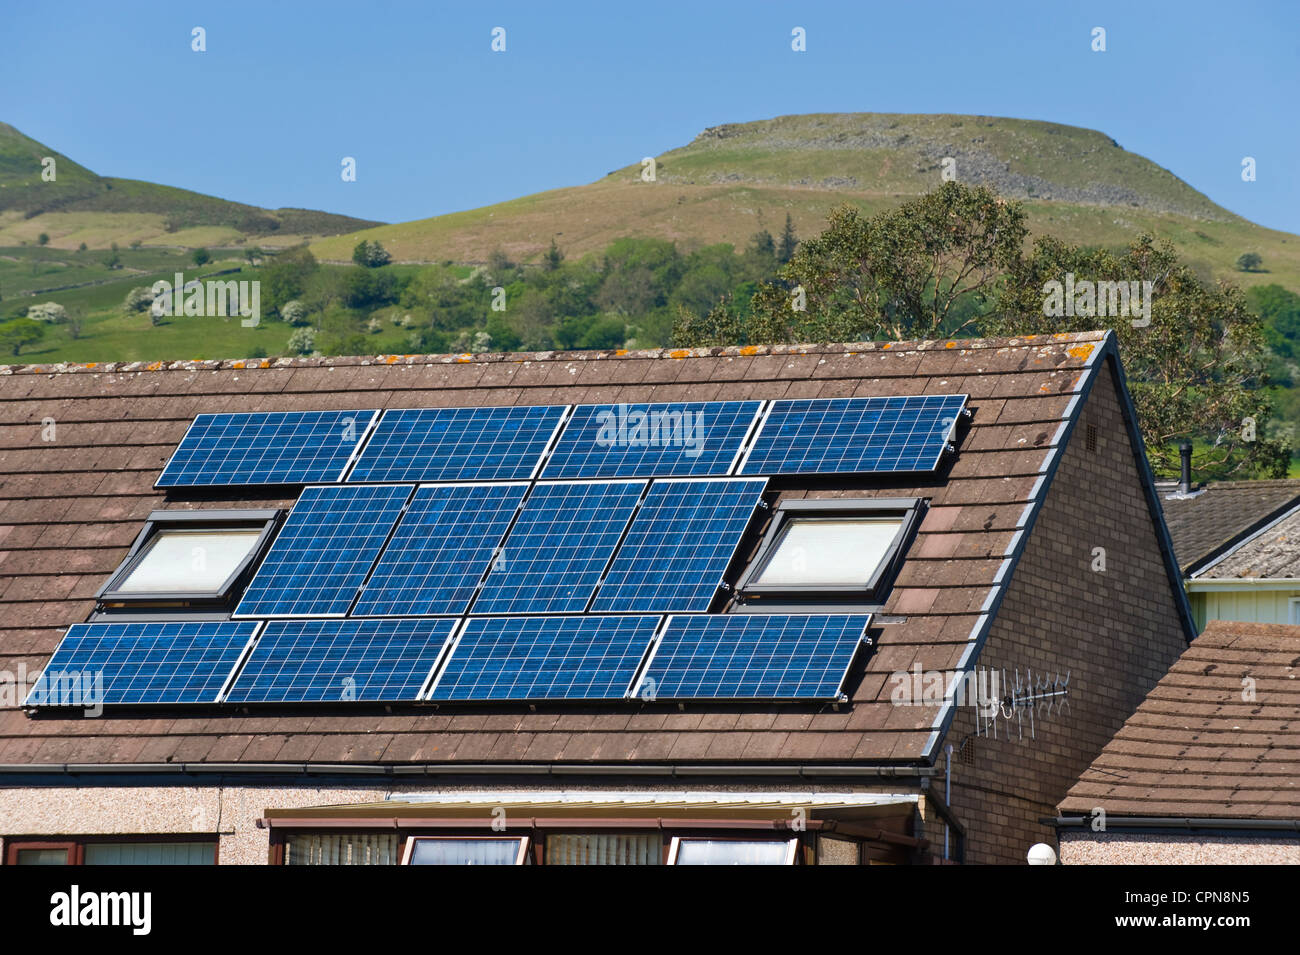 Solar panels on roof of houses in a rural housing development in Crickhowell South Wales UK Table Mountain behind - Stock Image